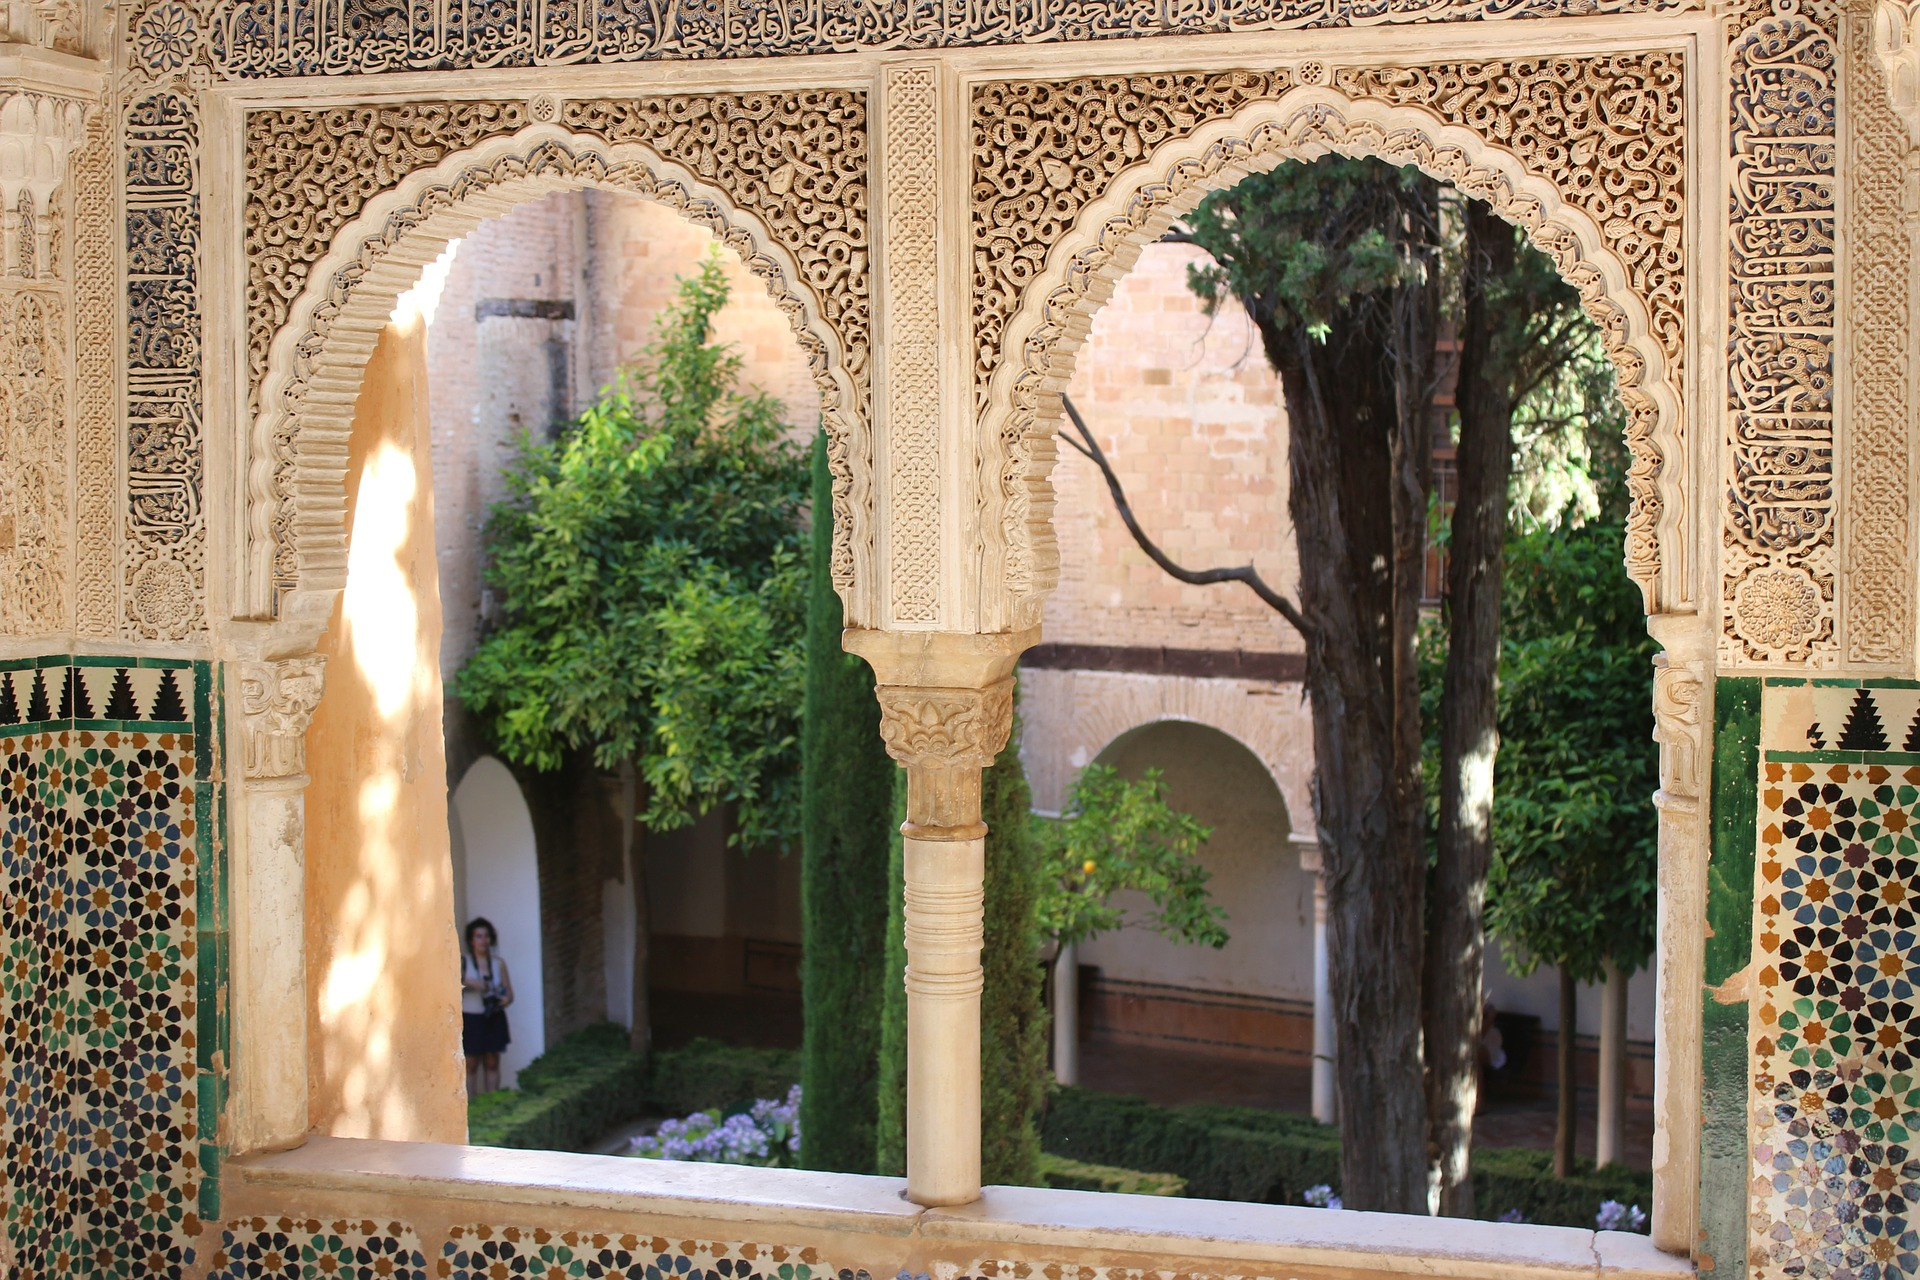 Window view in Alhambra - arches and arabesque